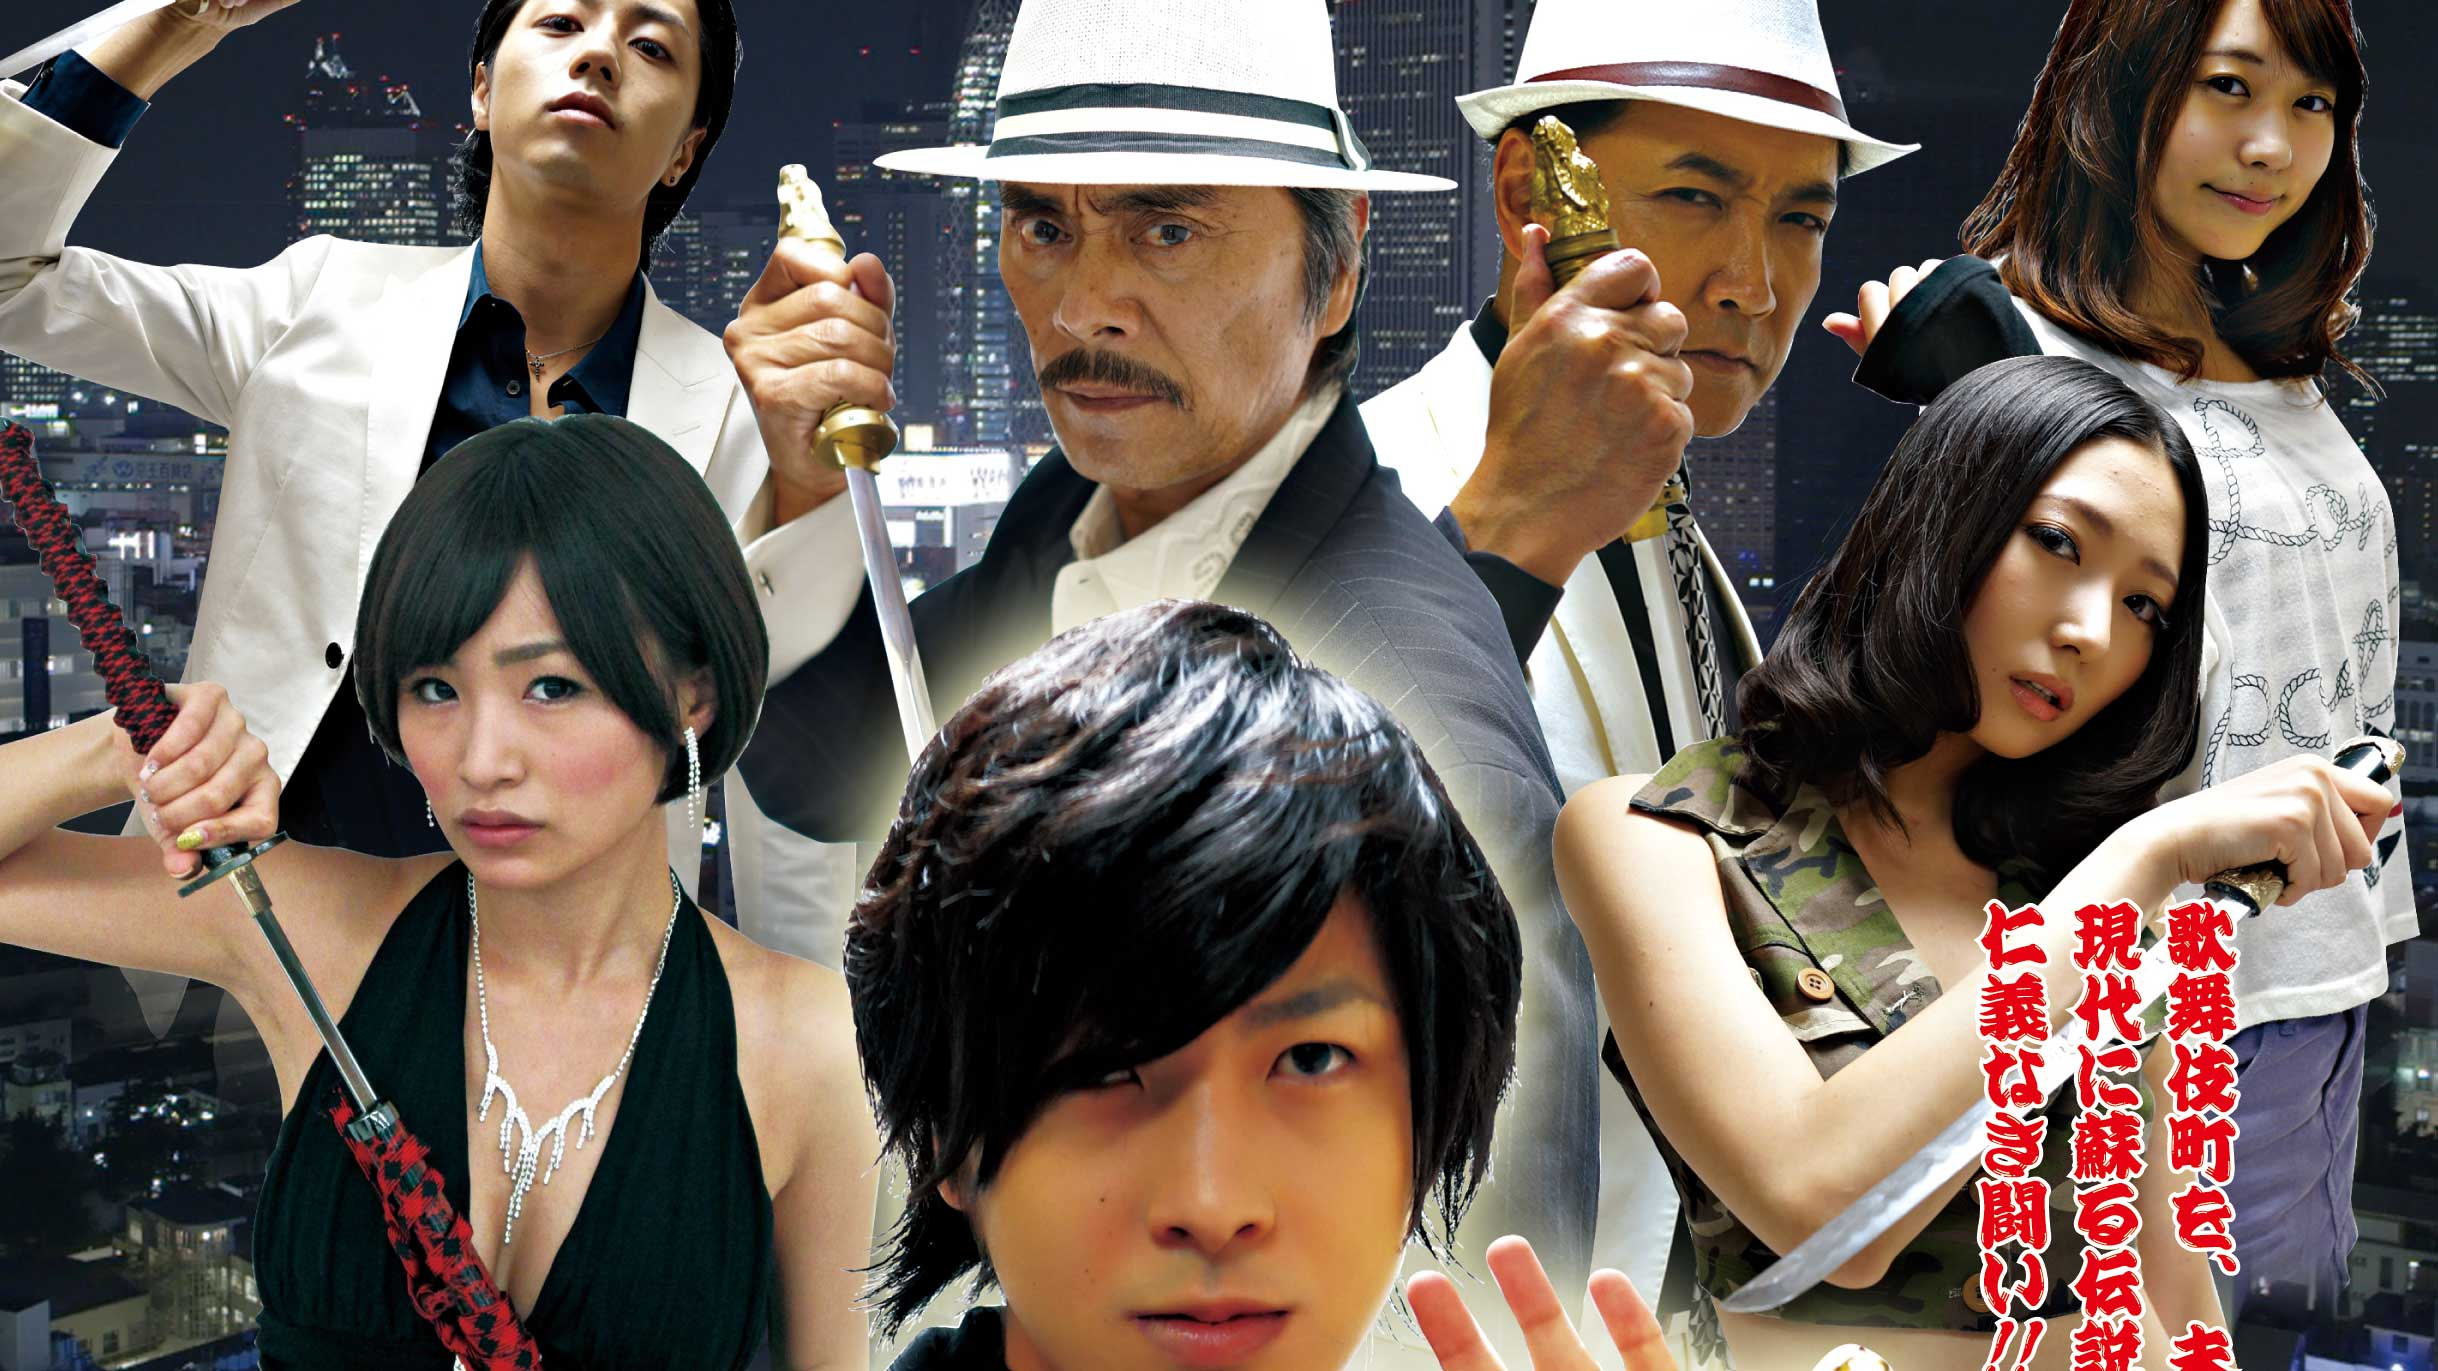 Tokusatsu Manga Artist & Actors Appear in Crowdfunded Dragon Emperor Yakuza Movie